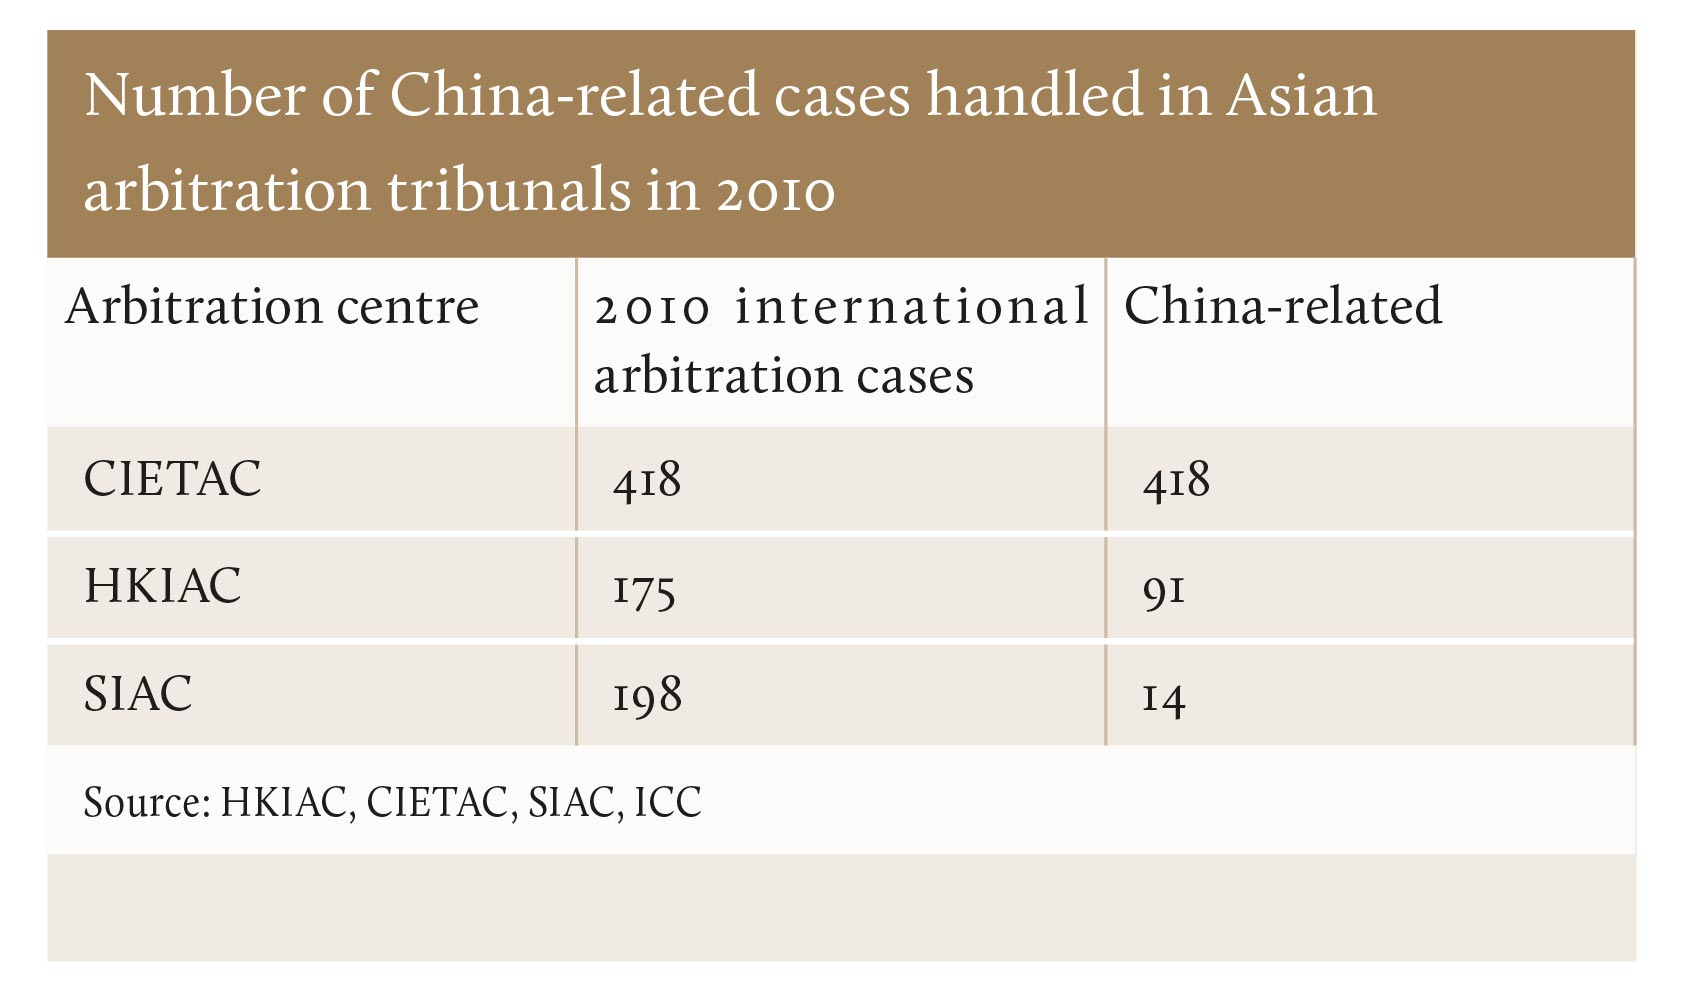 Number of China-related cases handled in Asian arbitration tribunals in 2010